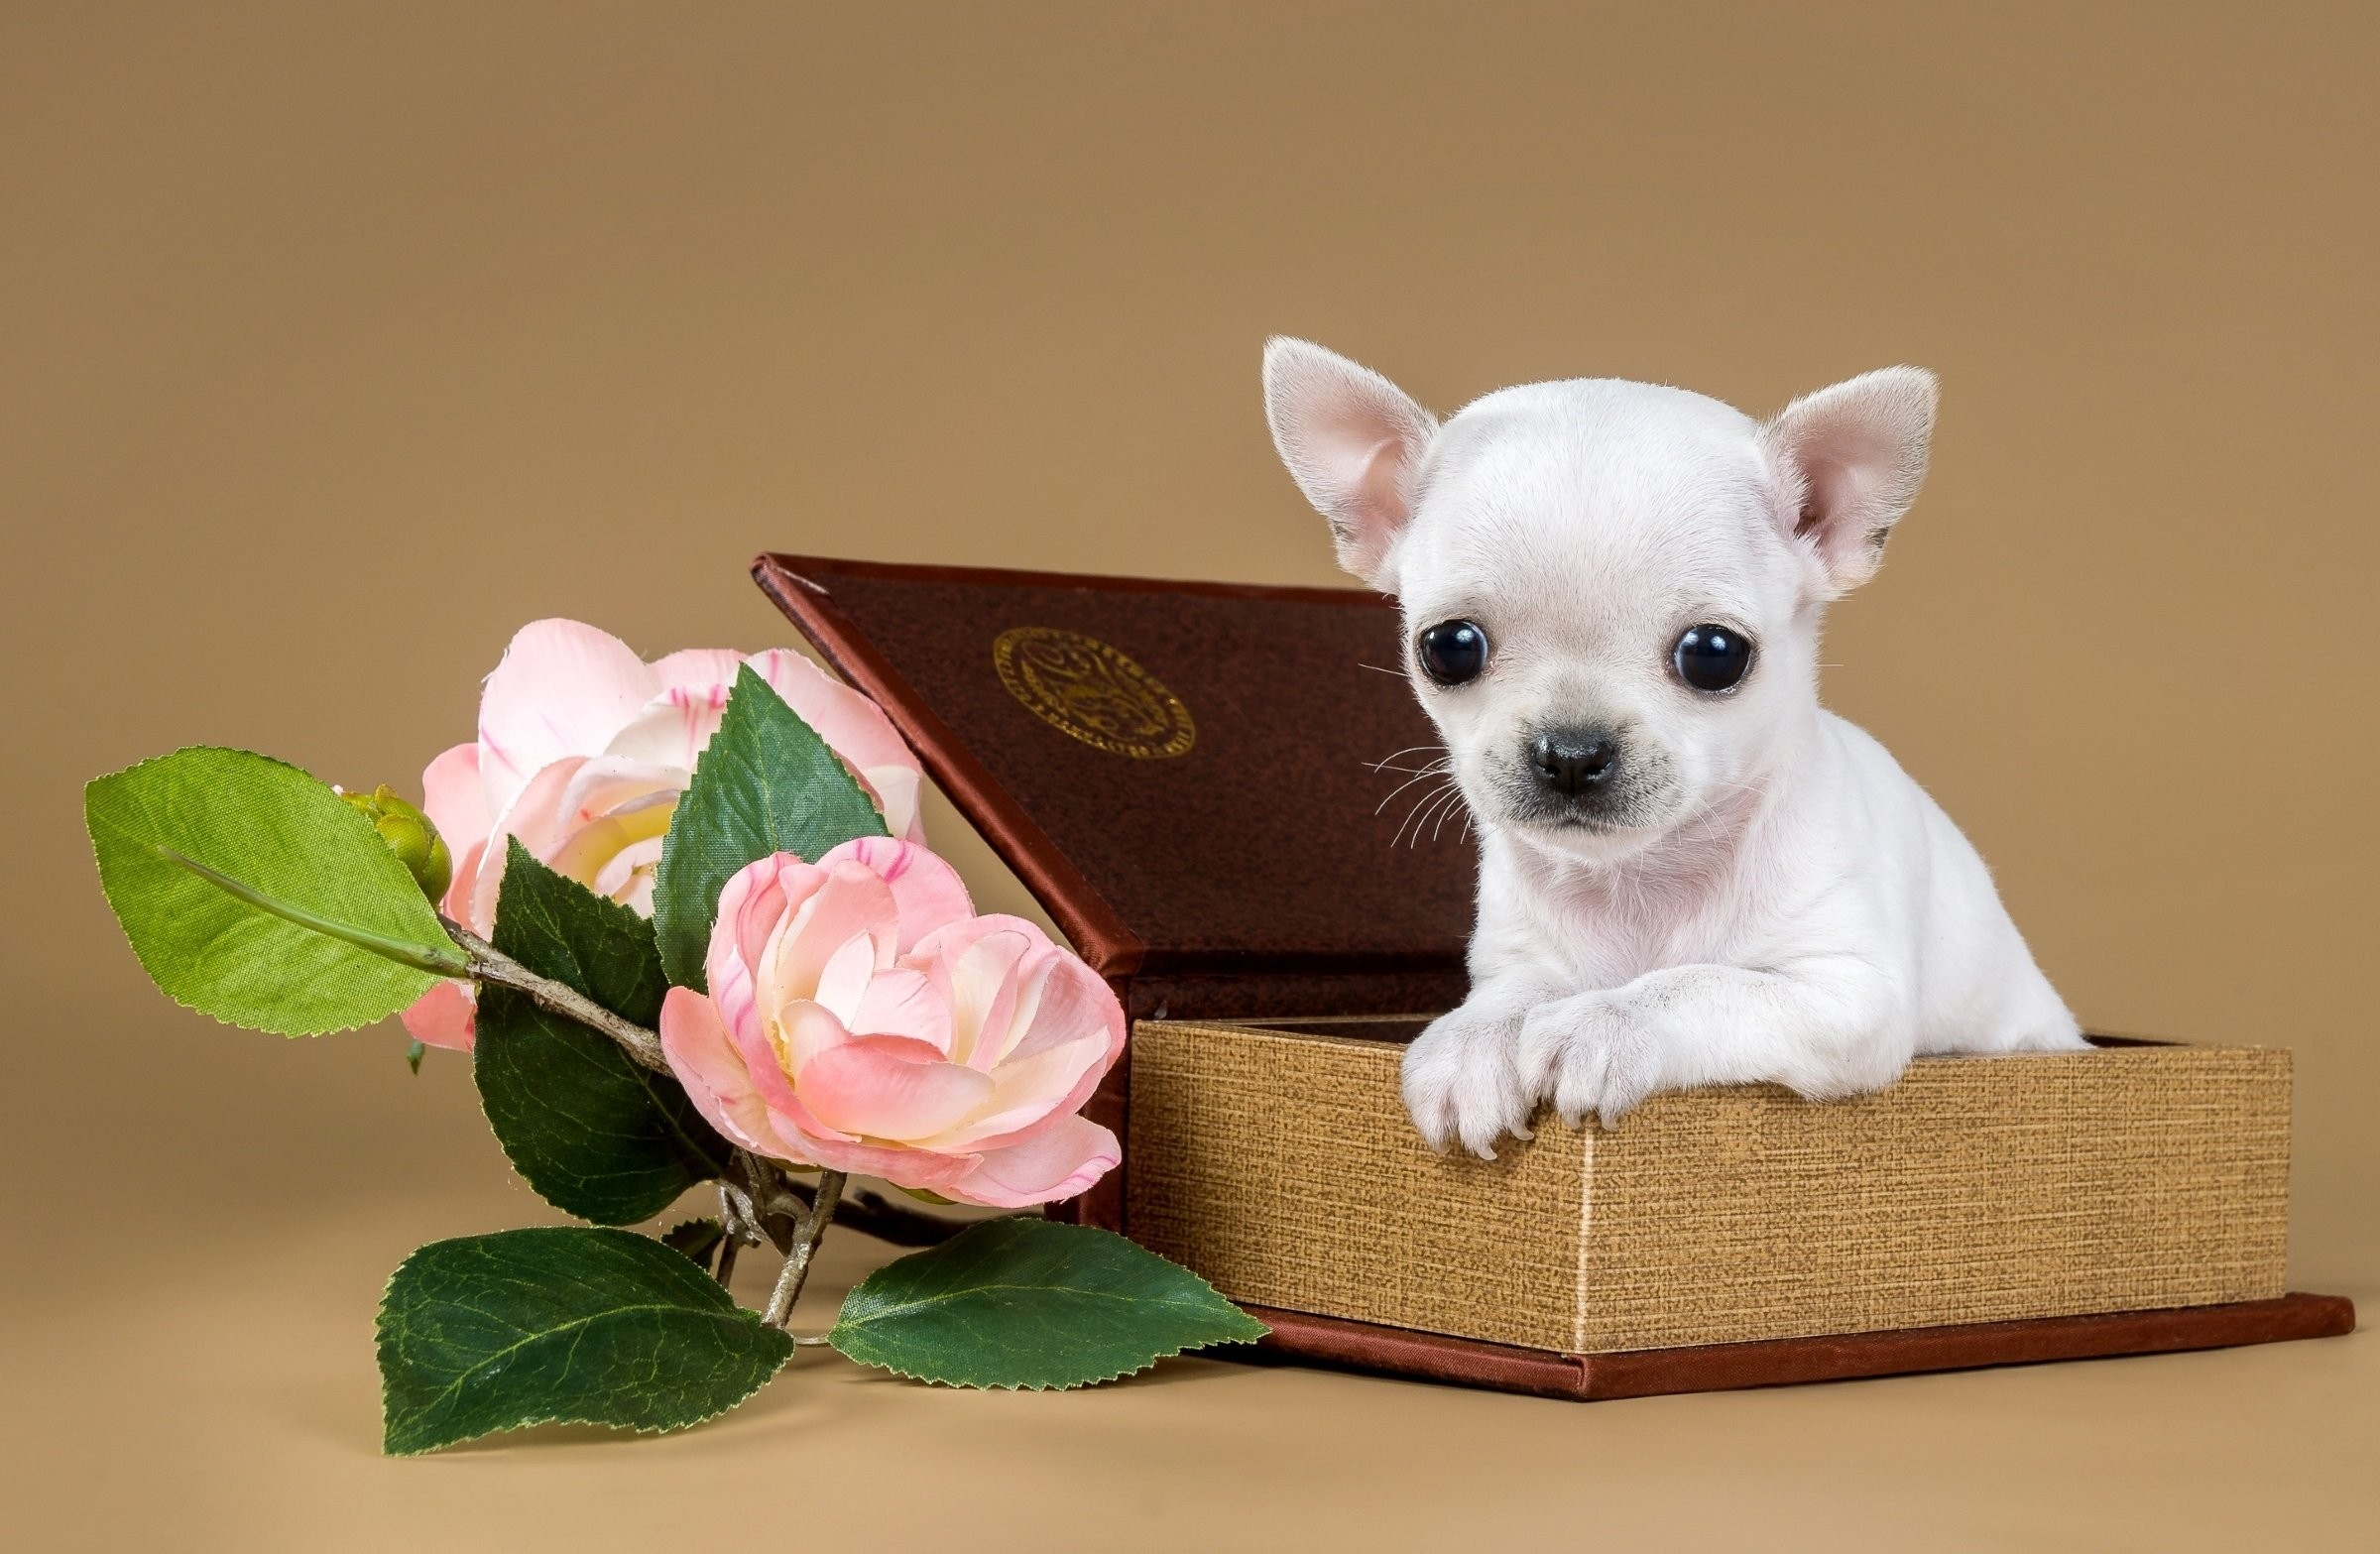 Res: 2400x1567, Chihuahua puppy dog flowers jewelry box g wallpaper |  | 719412 |  WallpaperUP